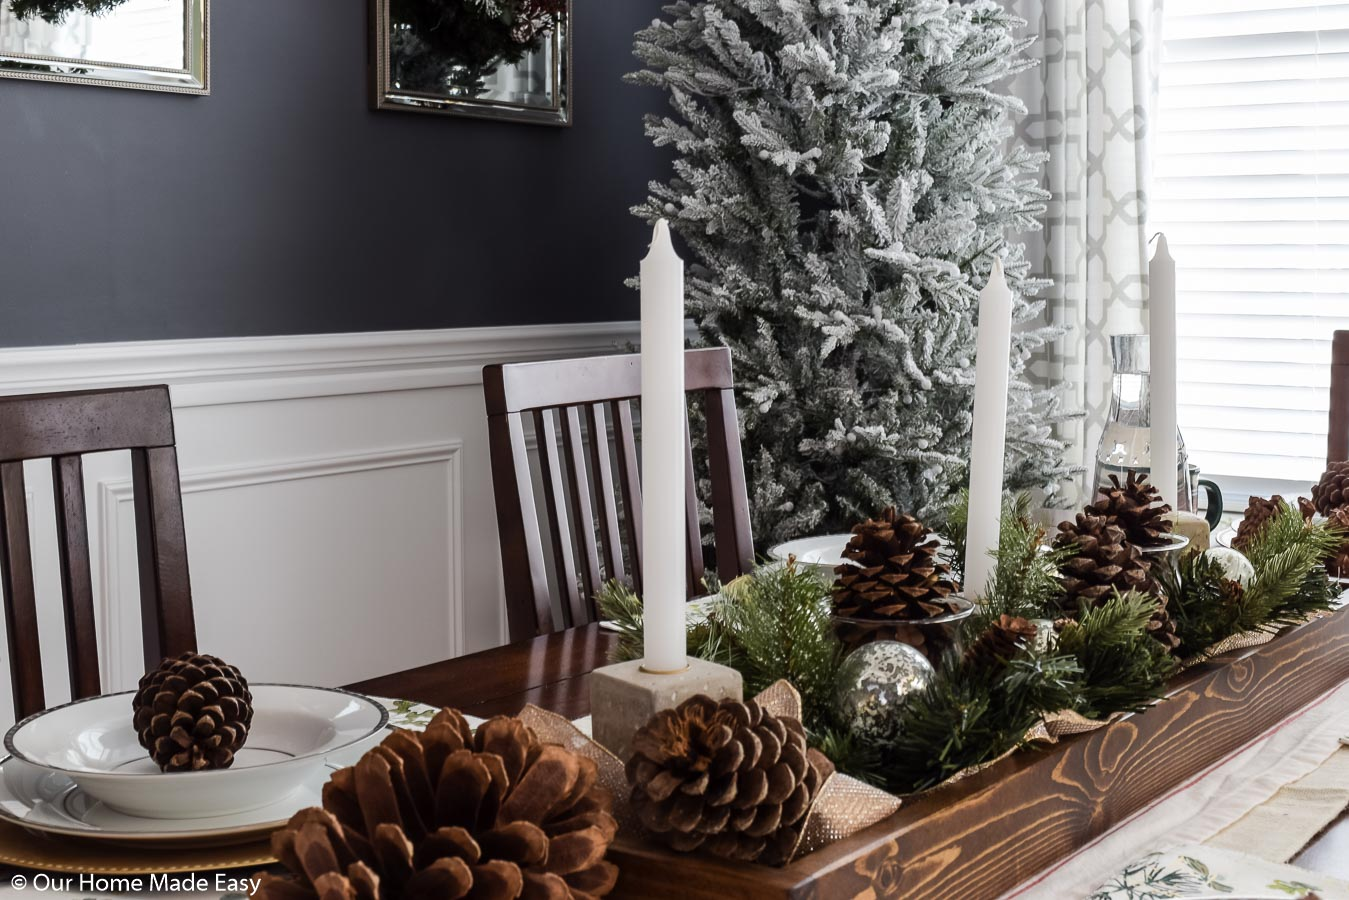 Candlesticks are a perfect addition to our Christmas dining room table centerpiece